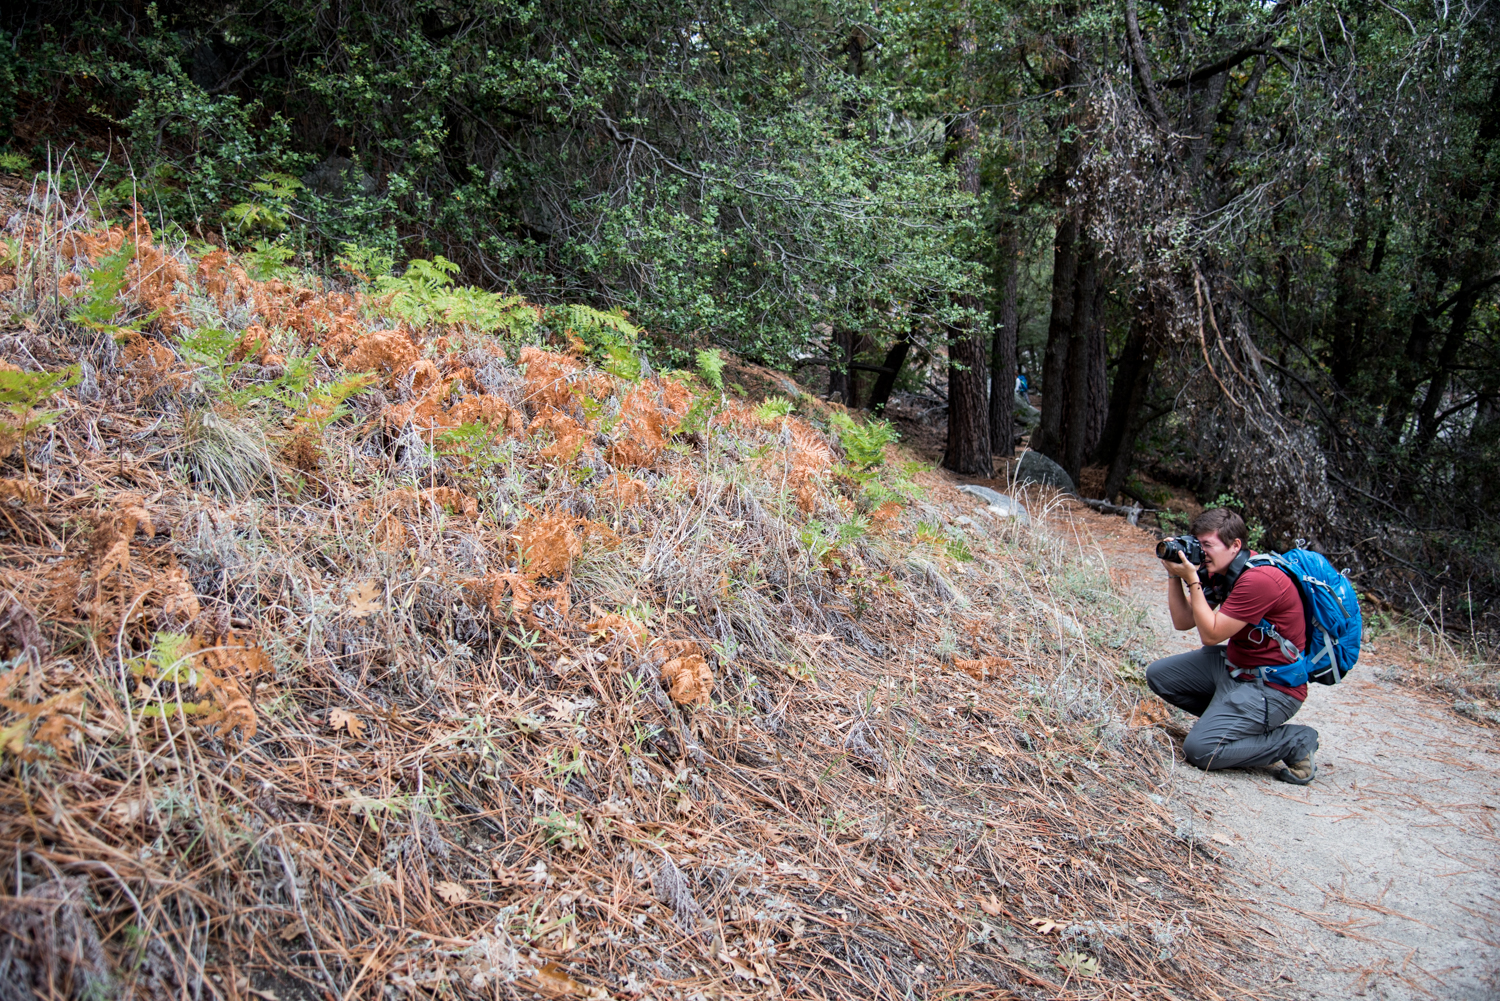 Kim shooting a field of ferns and fallen pine needles